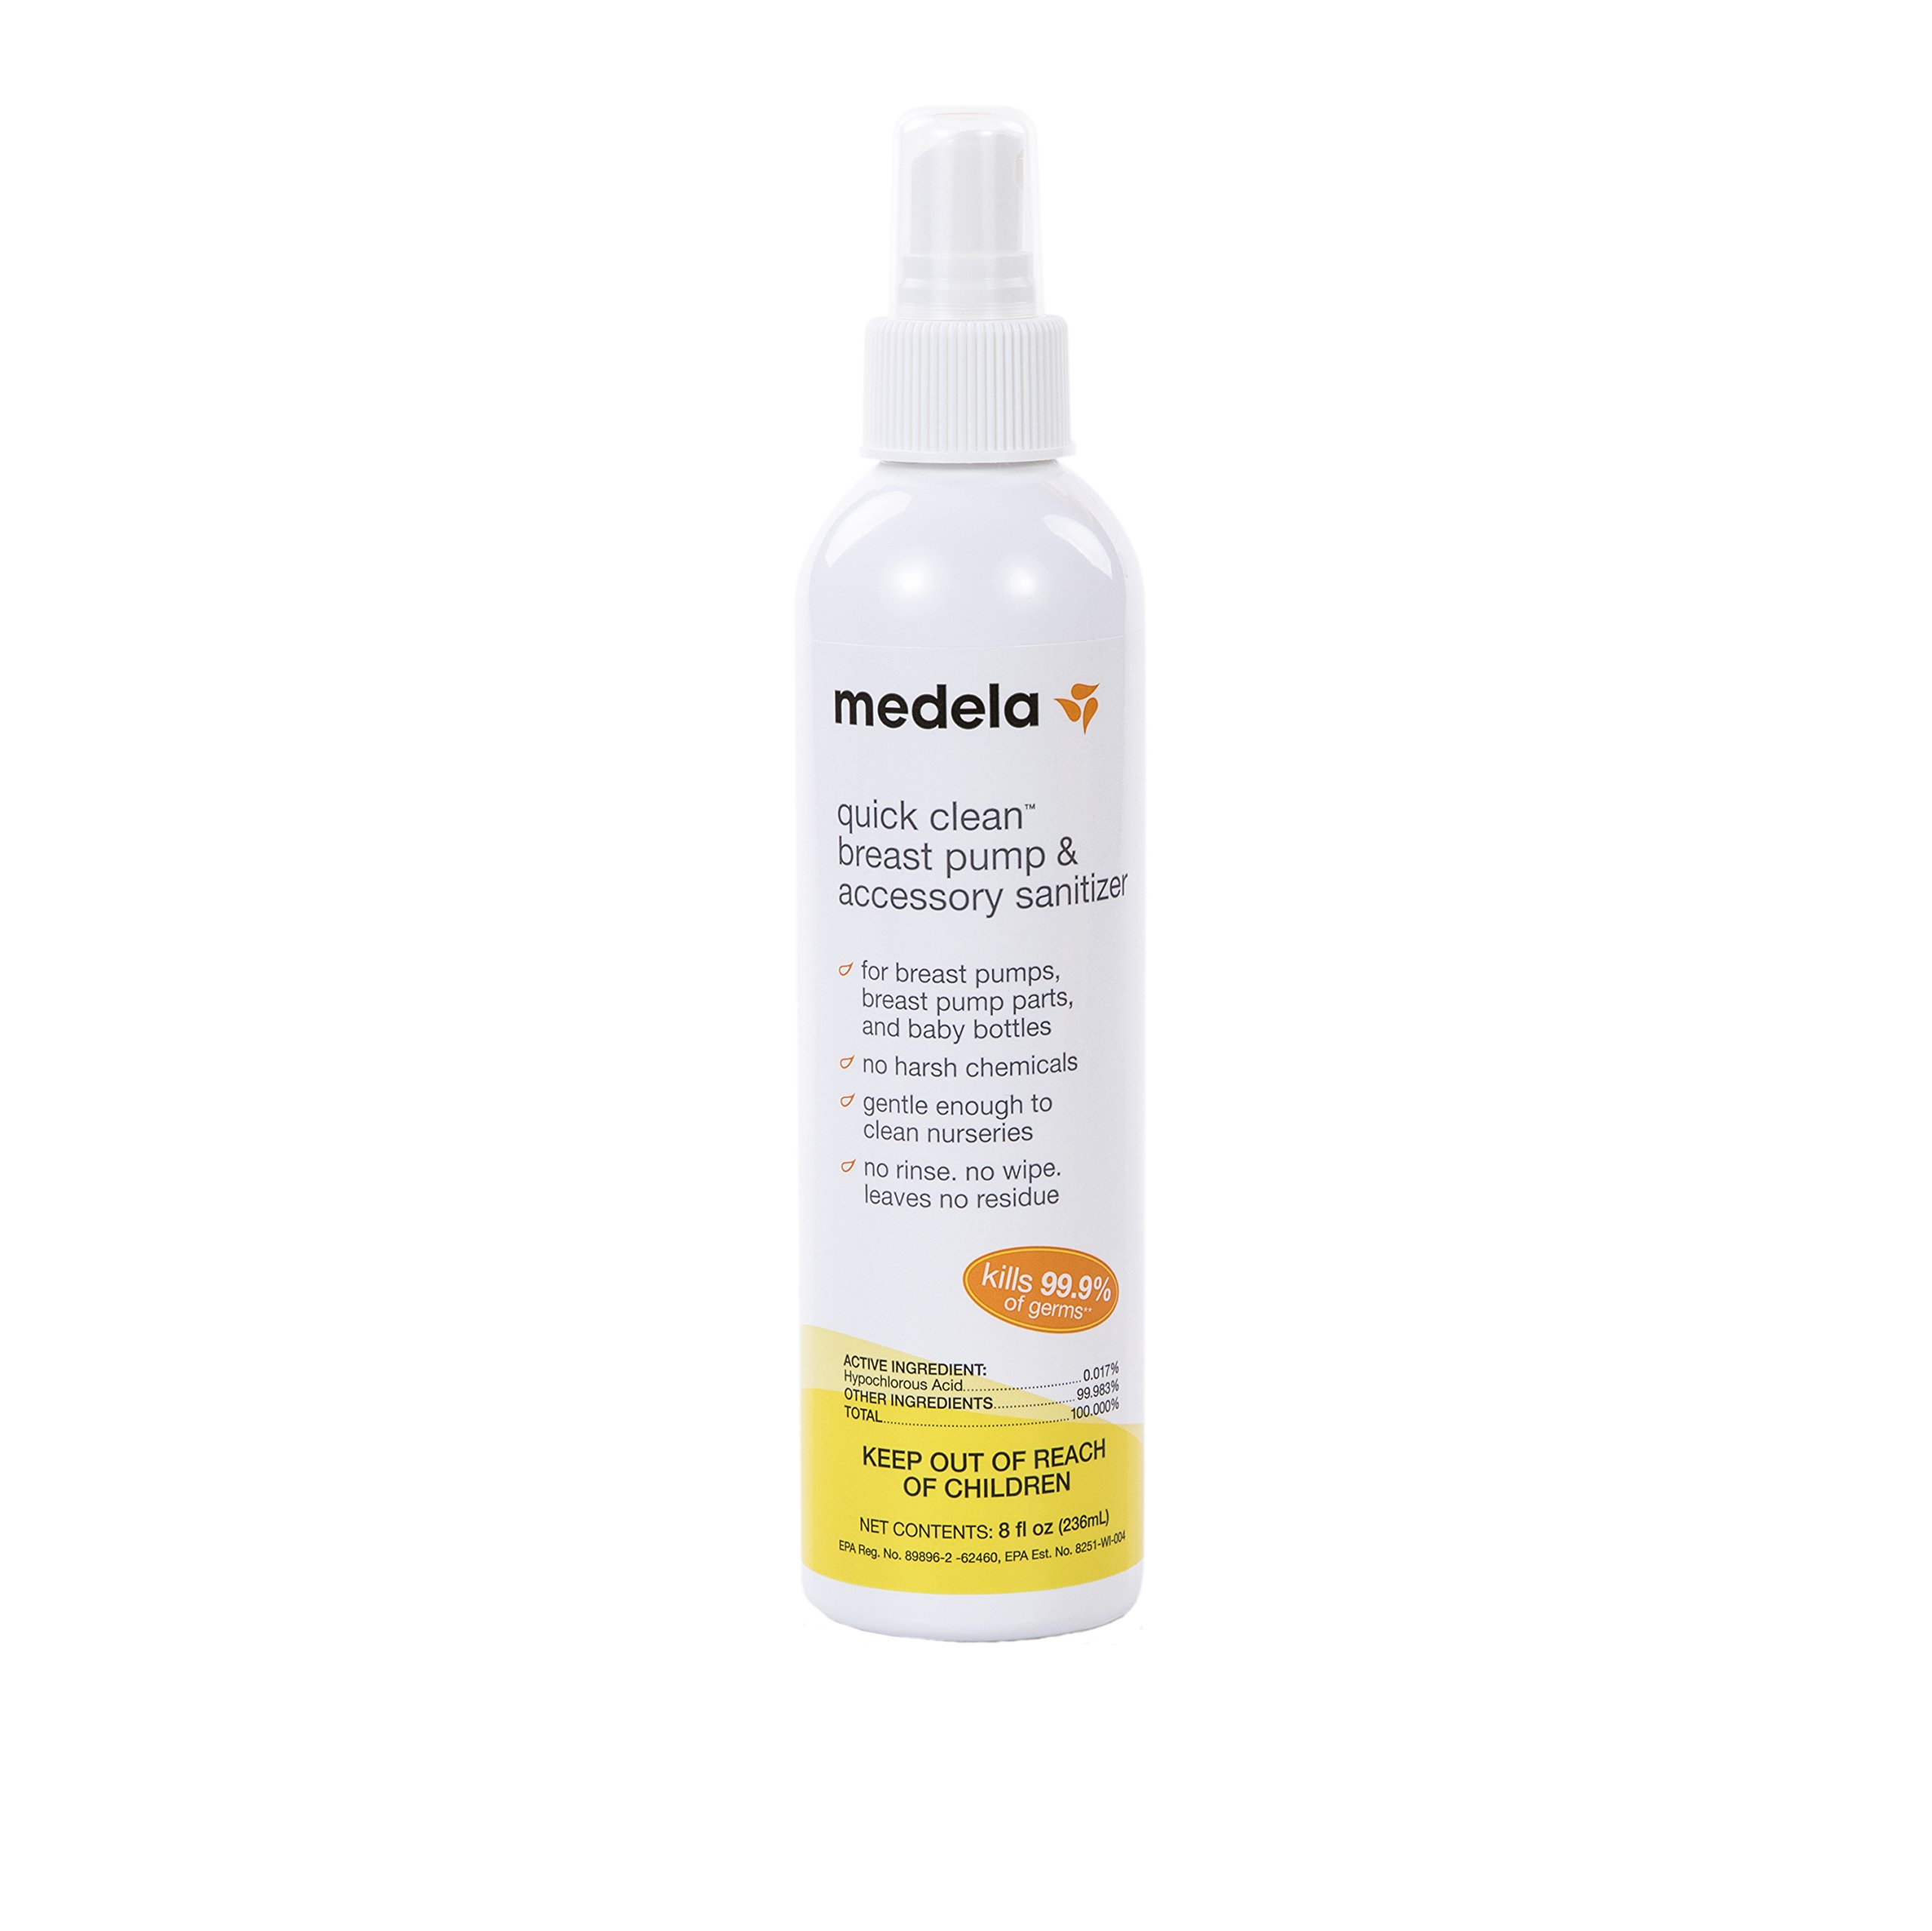 Medela Quick Clean Breast Pump and Accessory Sanitizer Spray, Safe No Rinse Breastpump Sterilizer, Eliminates 99.9% of Common Bacteria and Germs, 8 Fluid Ounces